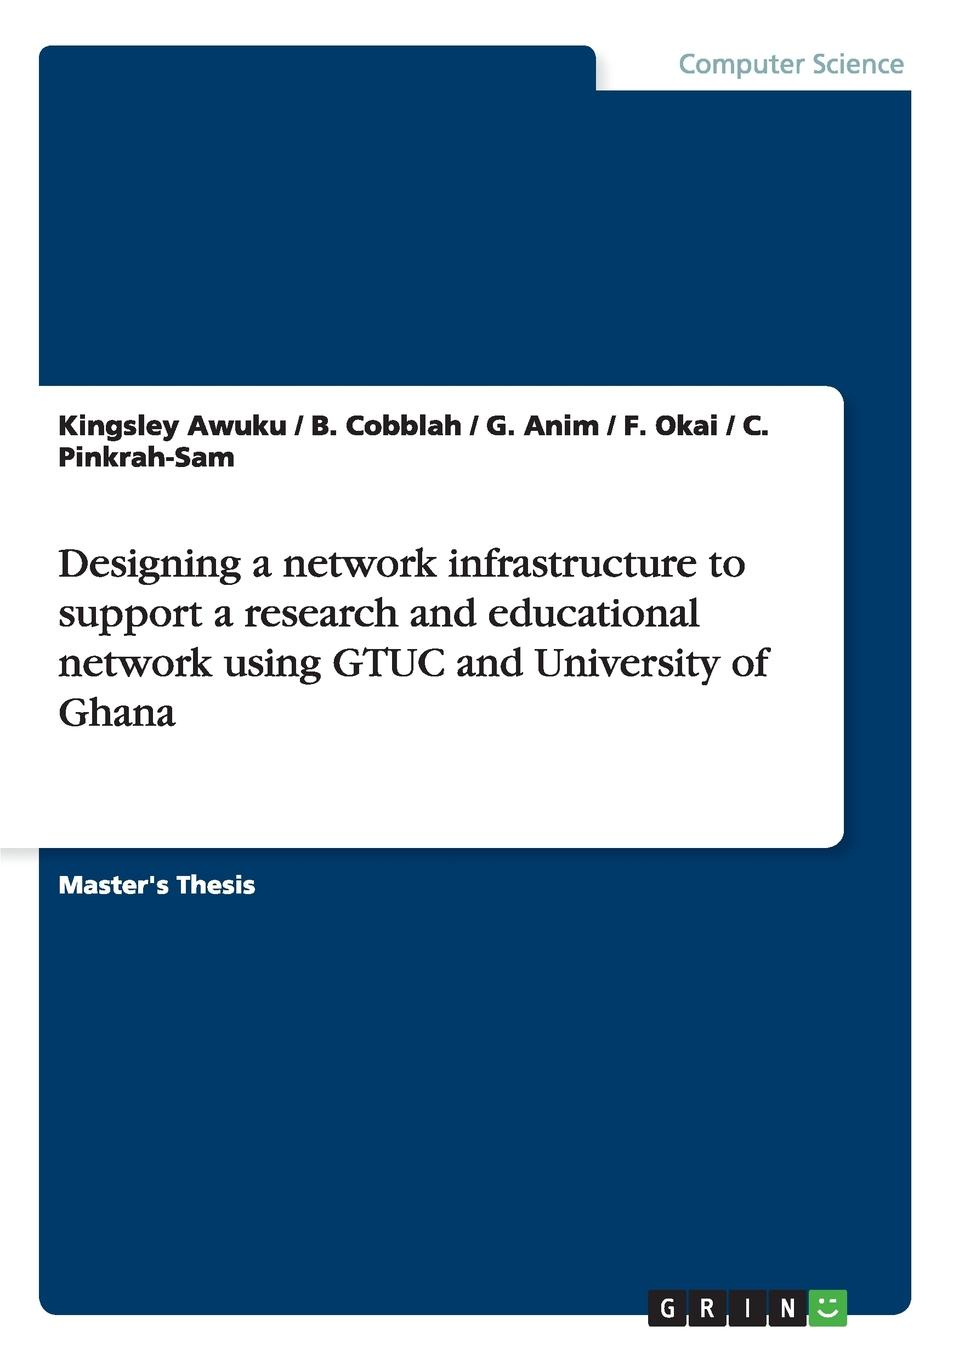 Kingsley Awuku, B. Cobblah, G. Anim Designing a network infrastructure to support a research and educational network using GTUC and University of Ghana ghana departm university of cape coast journal of integrative humanism vol 5 no 1